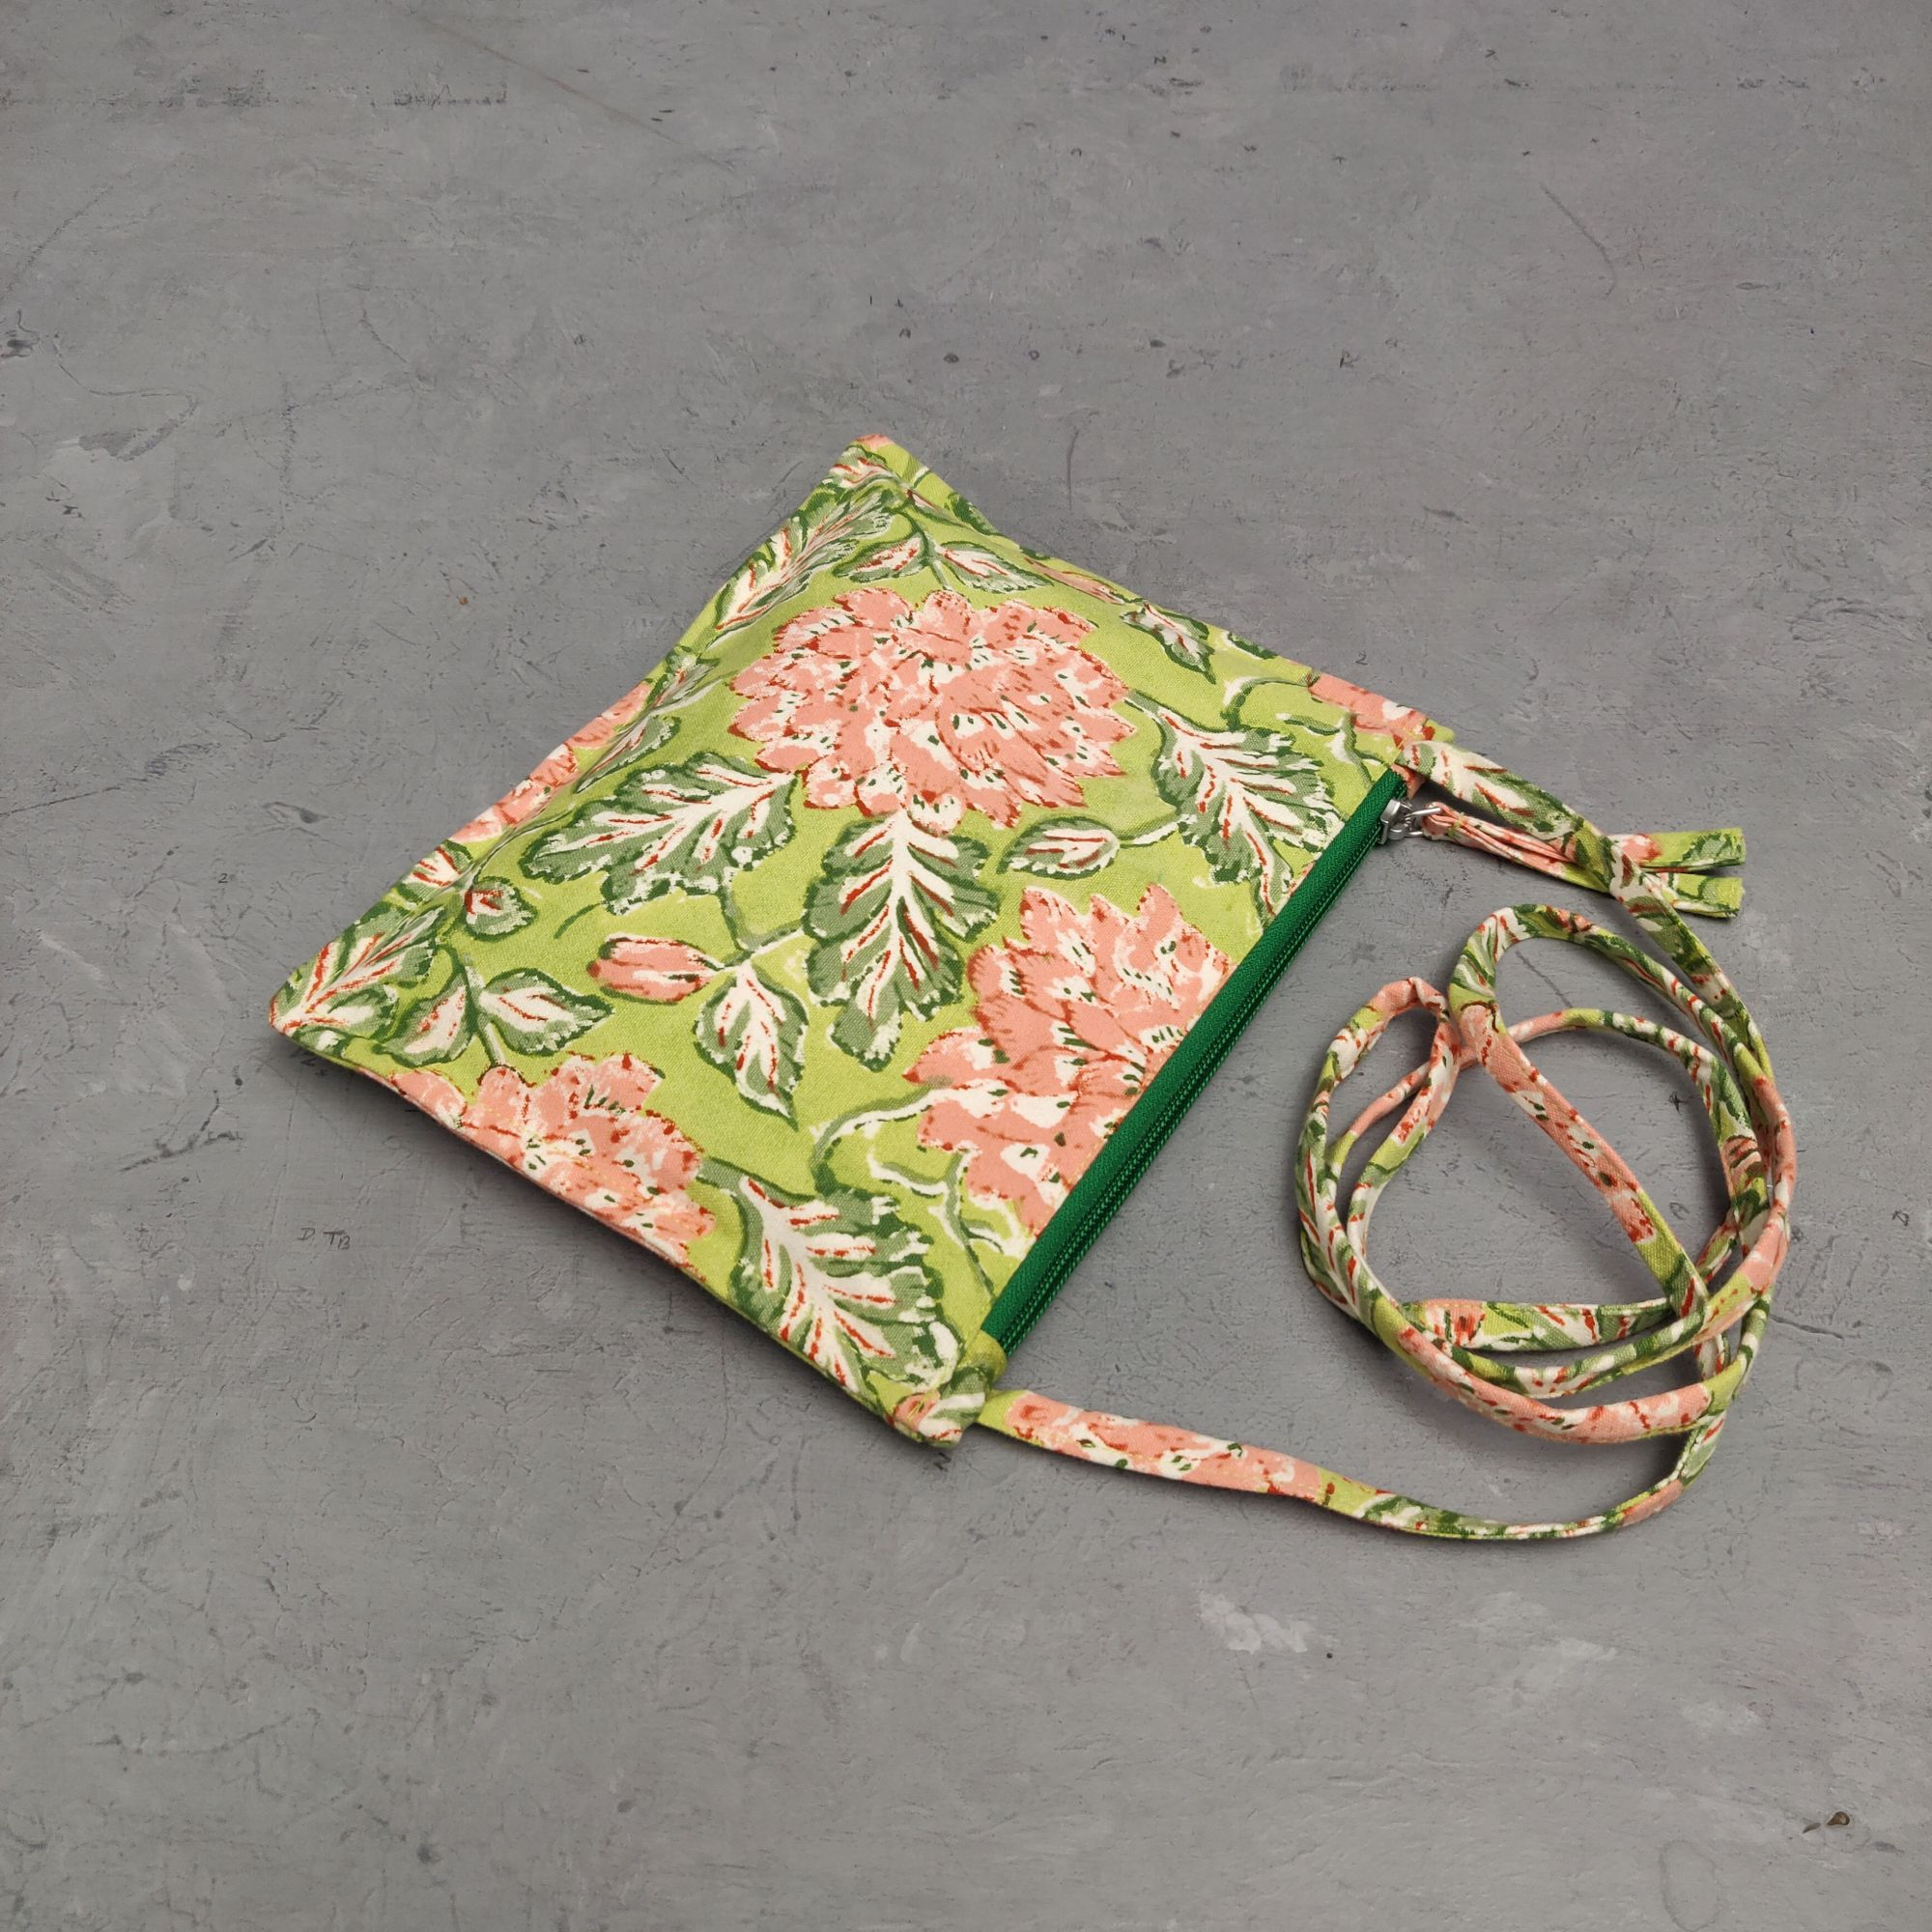 Green Based Peach Floral Canvas Sling Bag